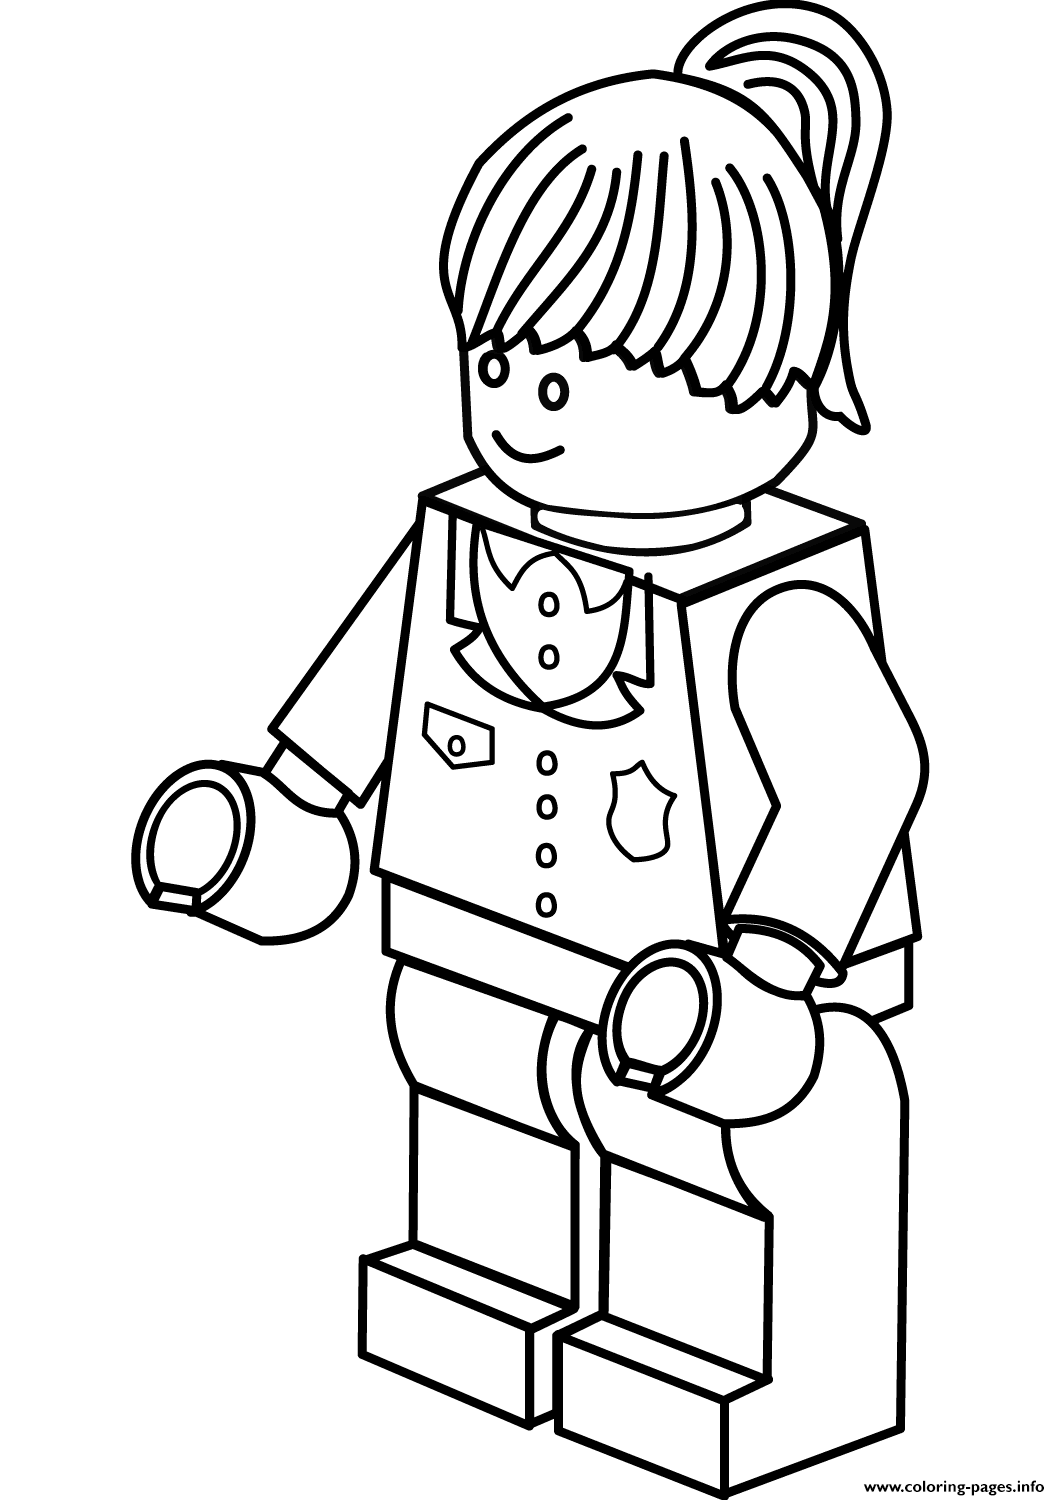 Lego Police Woman Coloring Pages Printable